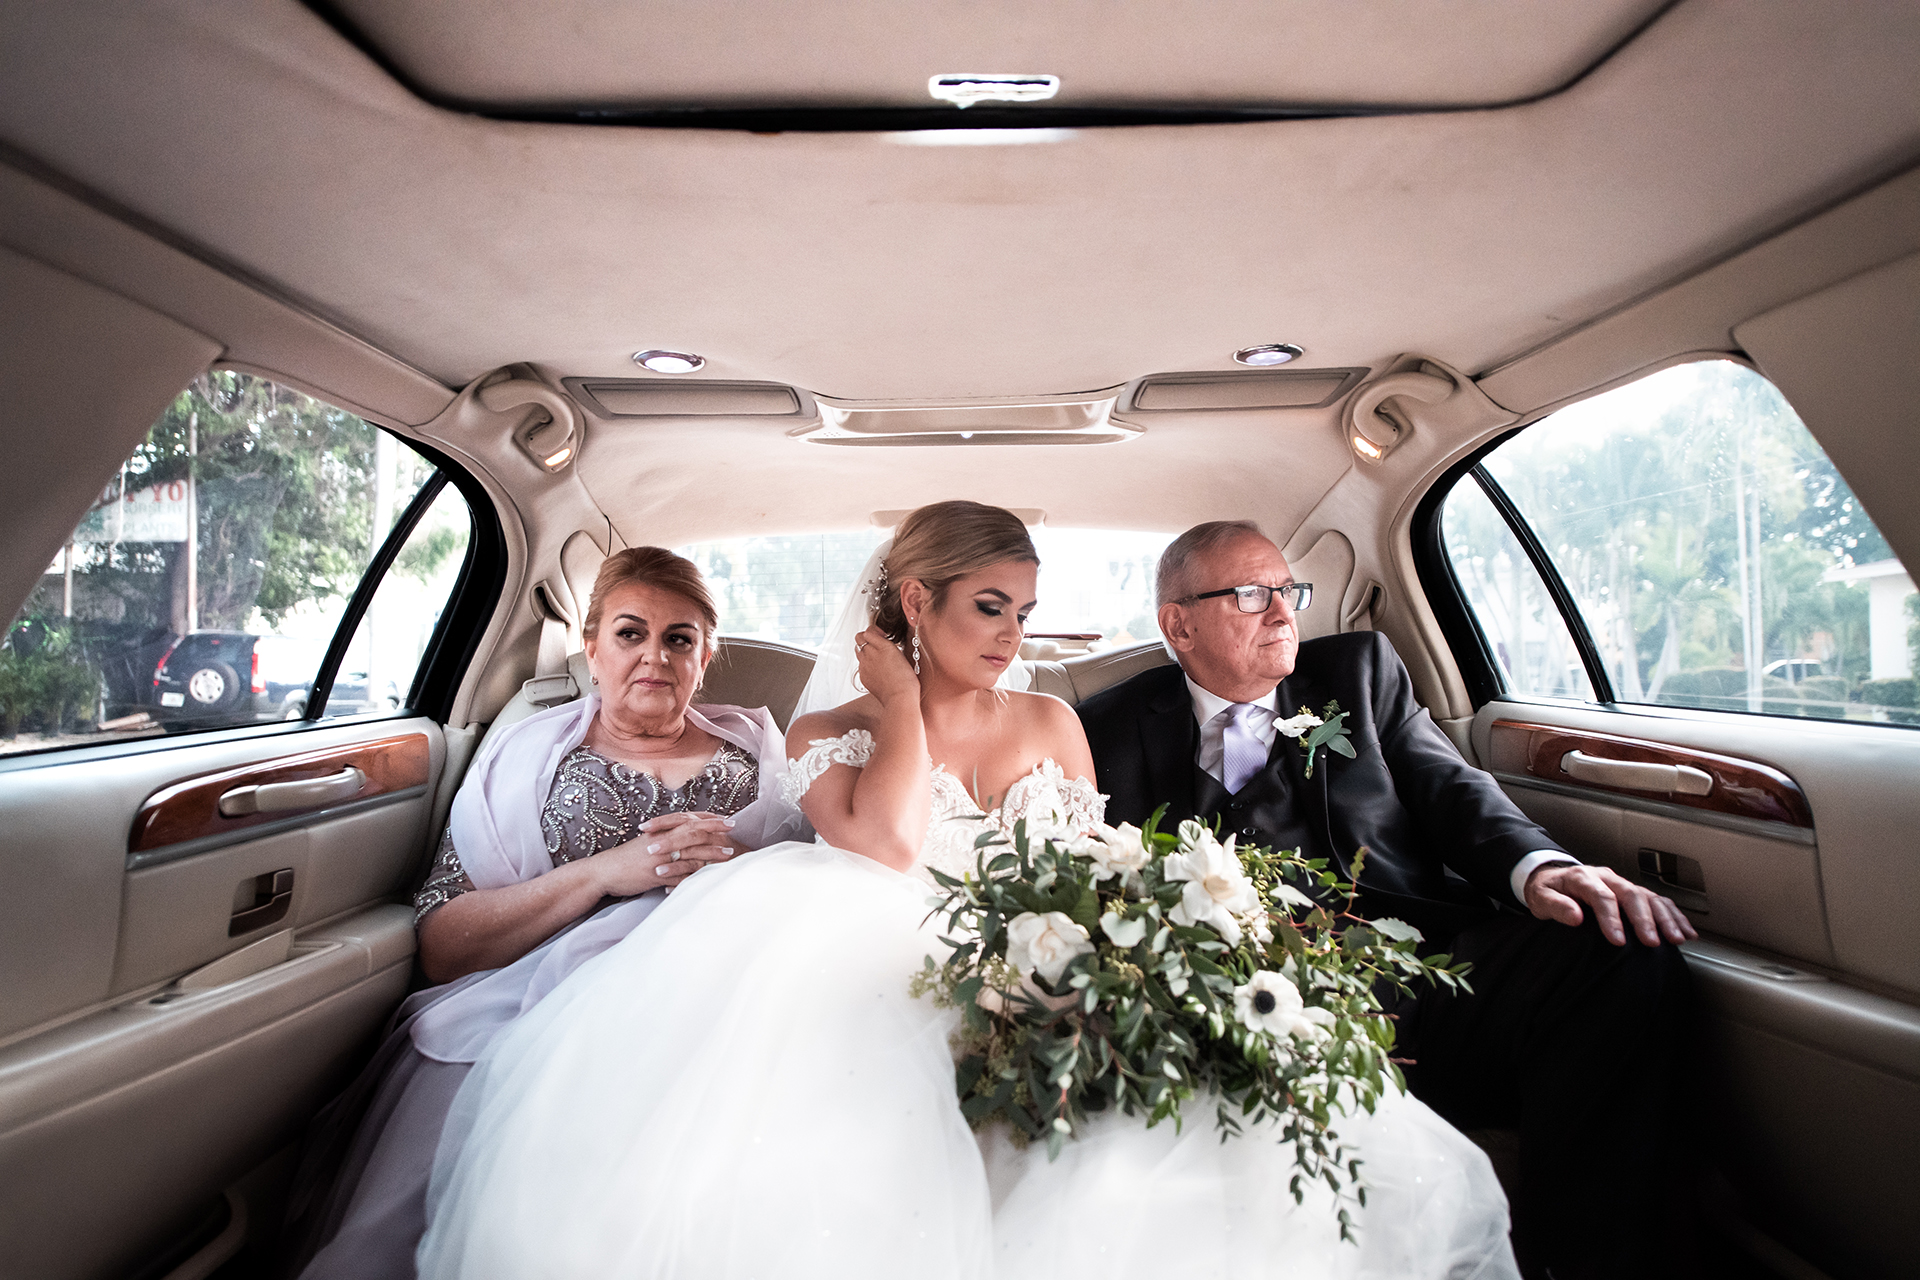 David Zaoui, of Florida, is a wedding photographer for The Epic Hotel Miami FL